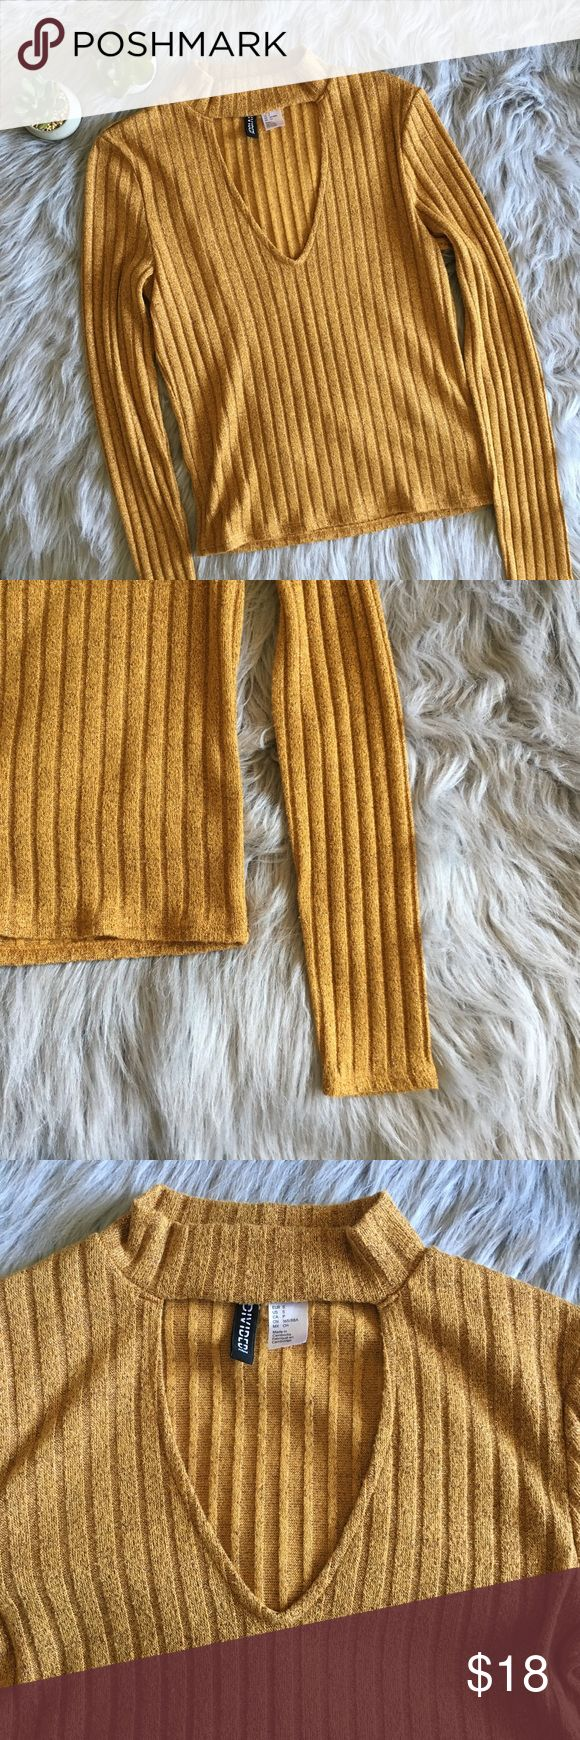 """Divided by H&M Ribbed Choker Top Excellent condition ribbed crop top in mustard yellow from Divided by H&M. Fabric is interwoven with metallic fabric. Bust 14"""", length 20"""", sleeves 23.5"""". Made of 47% polyester, 40% viscose, 10% metallised fiber, 3% elastane.   ❗️Ask all questions prior to purchase ❗️No trades ❗️Offers accepted through """"offer"""" button H&M Tops Blouses"""